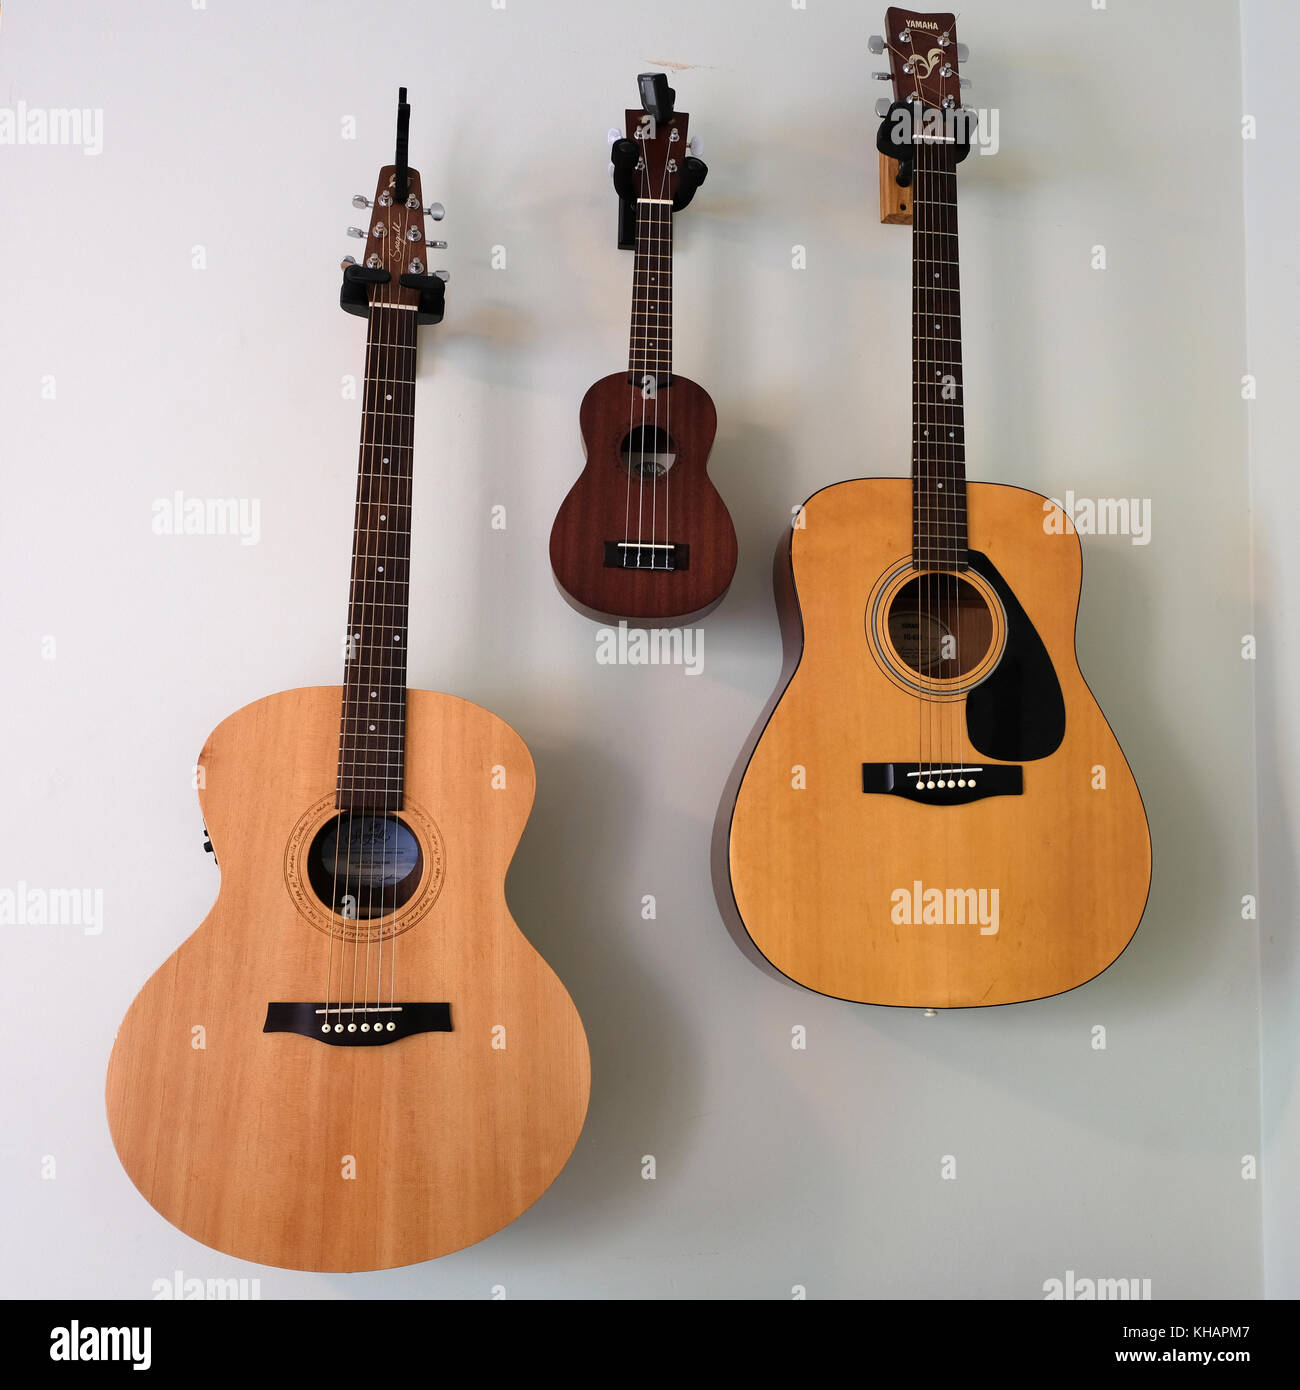 Two guitars and one banjo hanging on wall in symmetrical placement of musical instruments - Stock Image